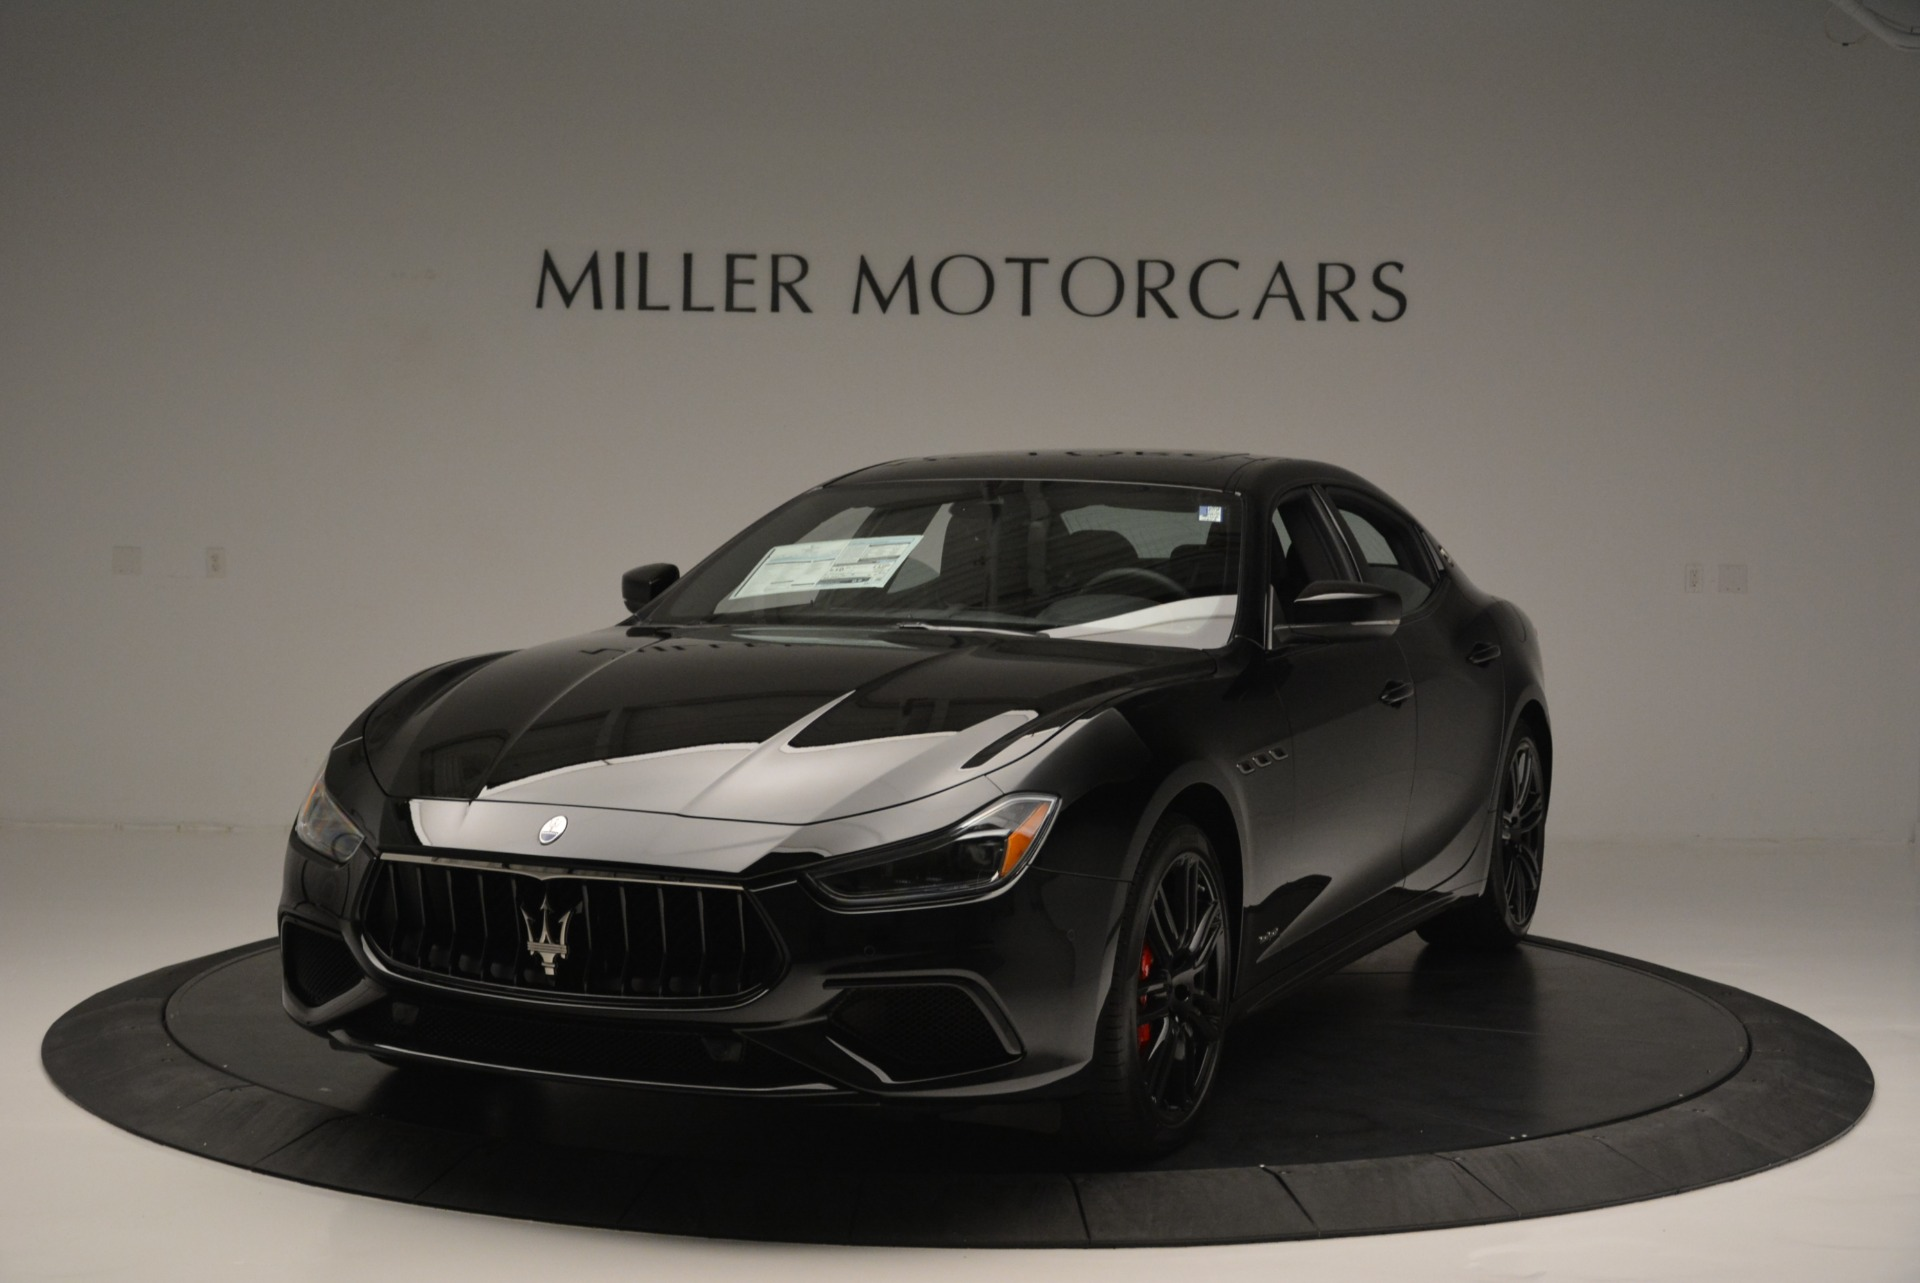 New 2018 Maserati Ghibli SQ4 GranSport Nerissimo for sale Sold at Pagani of Greenwich in Greenwich CT 06830 1